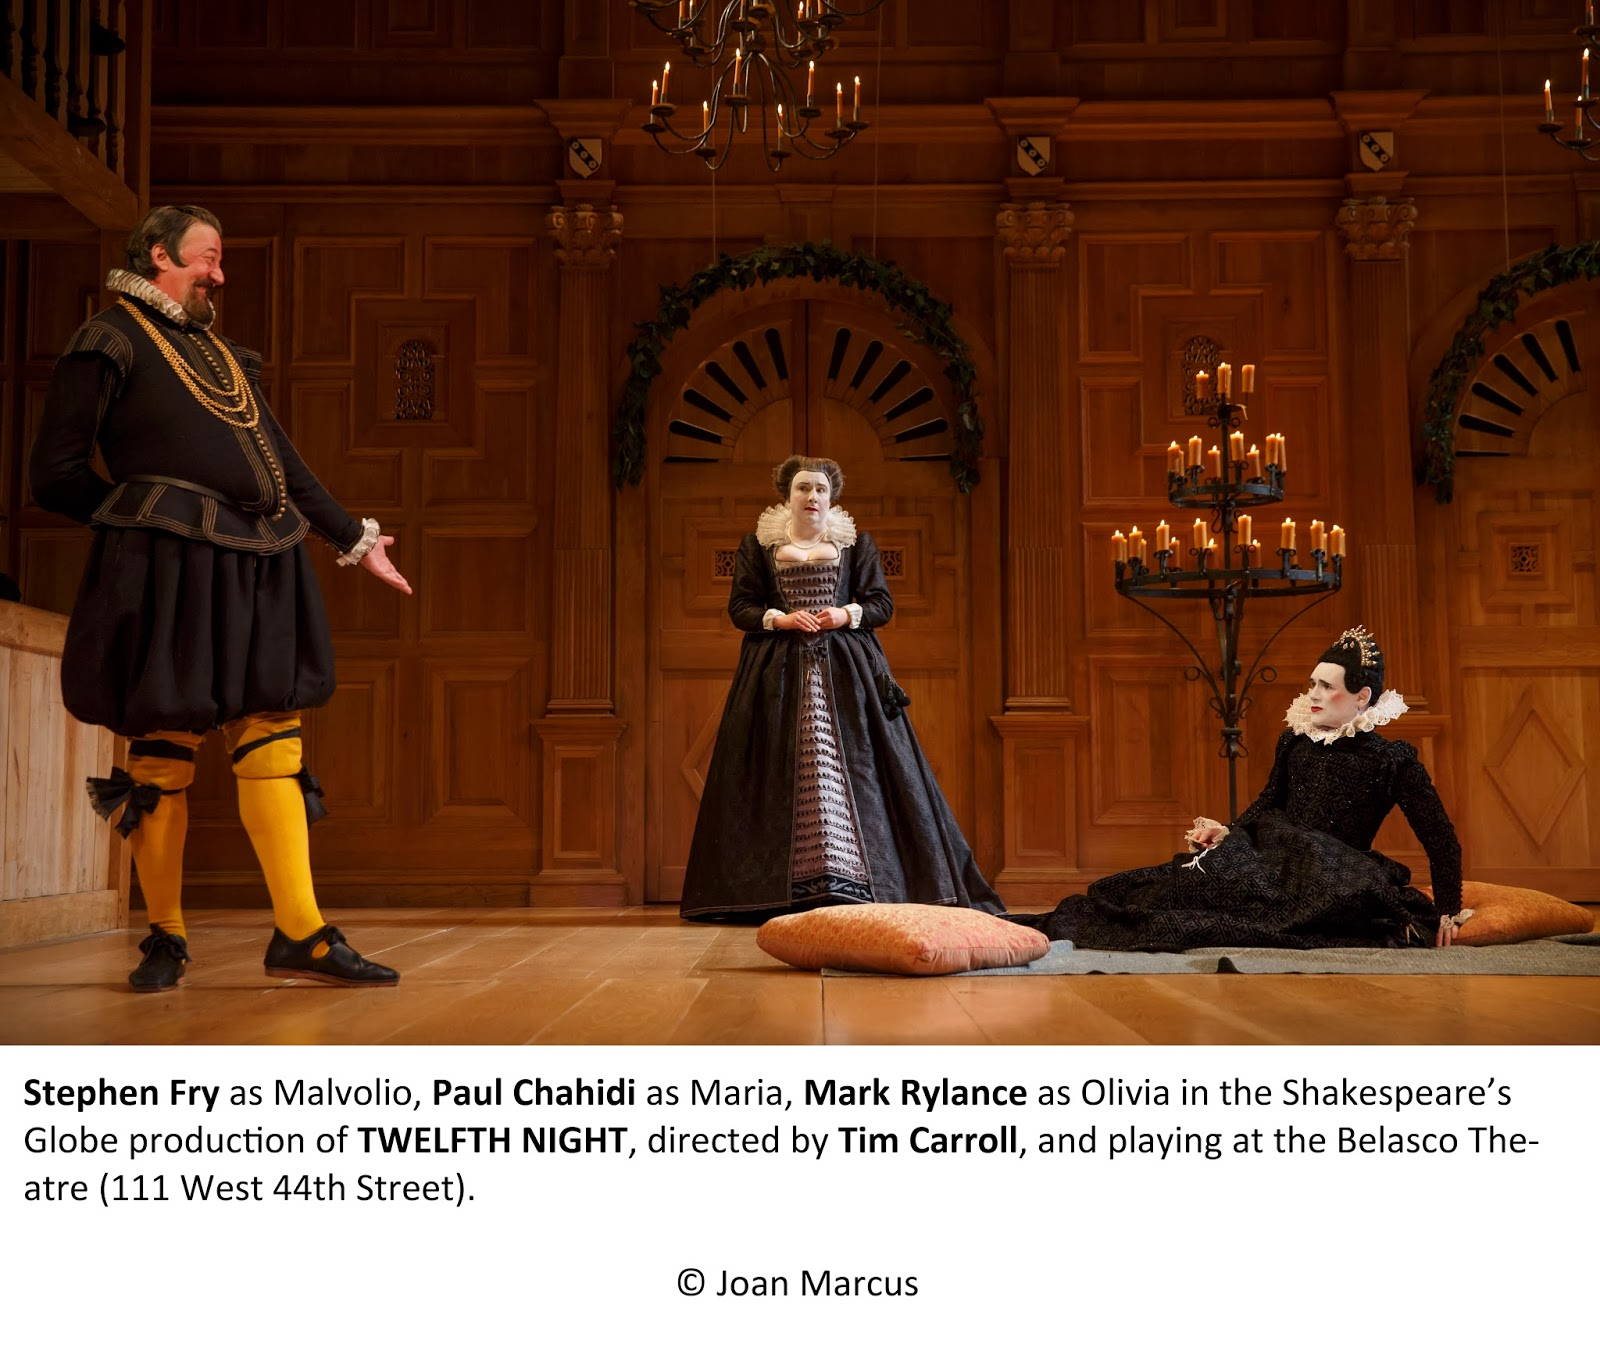 forbes on film footlights  there are no reservations whatsoever about twelfth night which delights from start to finish samuel barnett who essays the tragic queen elizabeth in